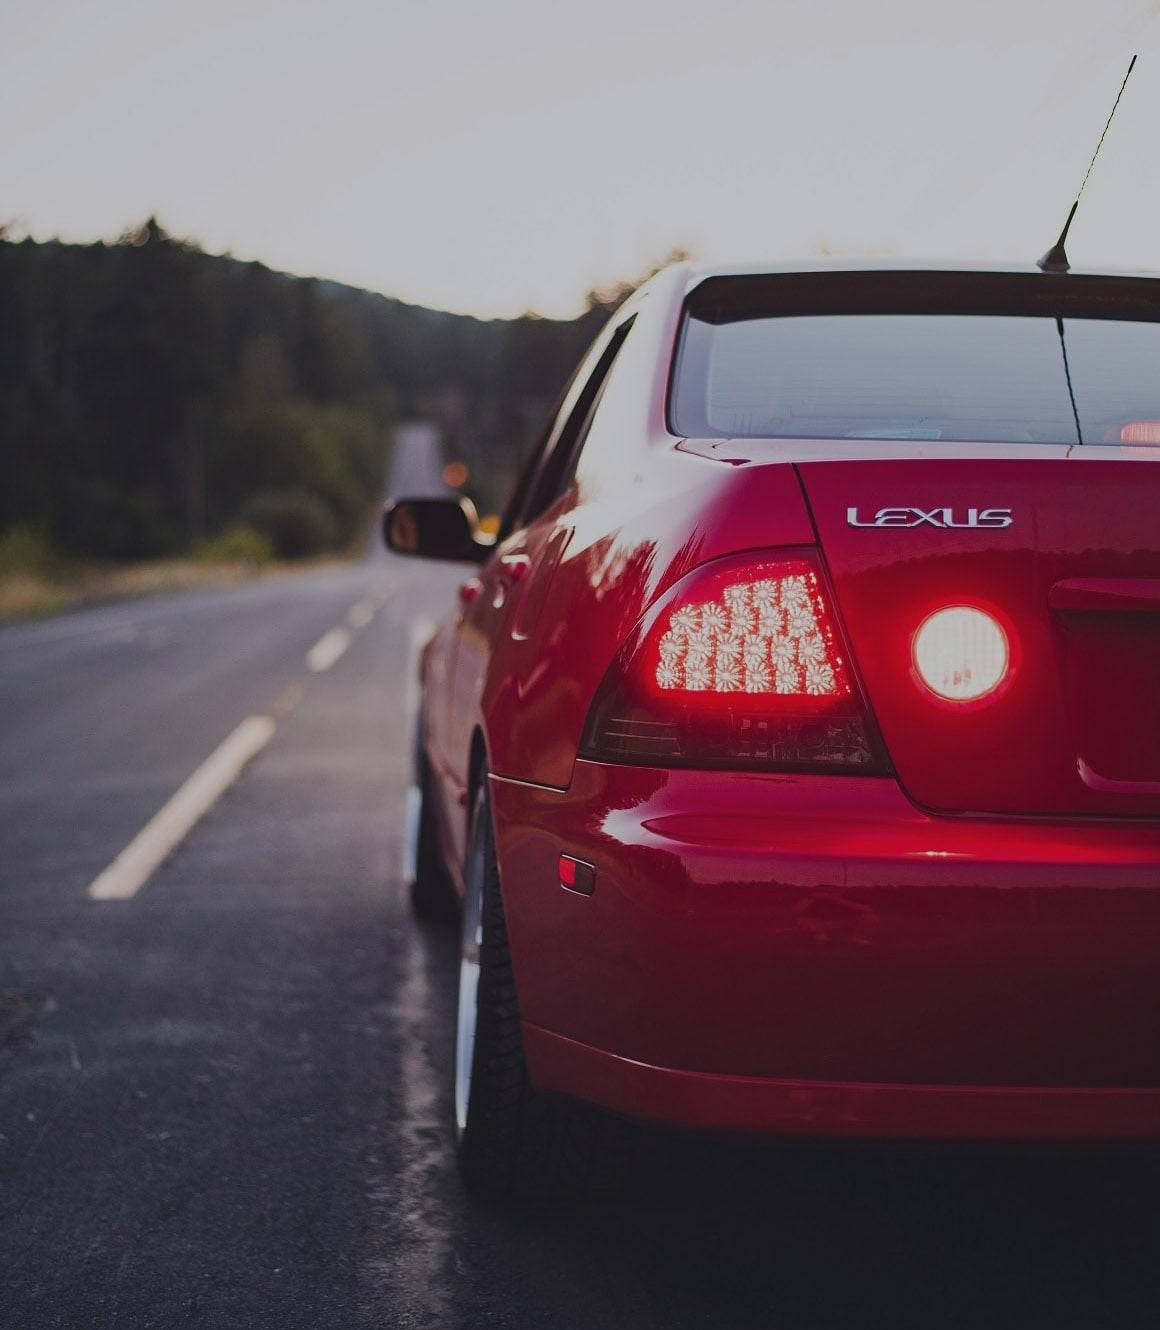 Compare Lexus insurance costs for all models